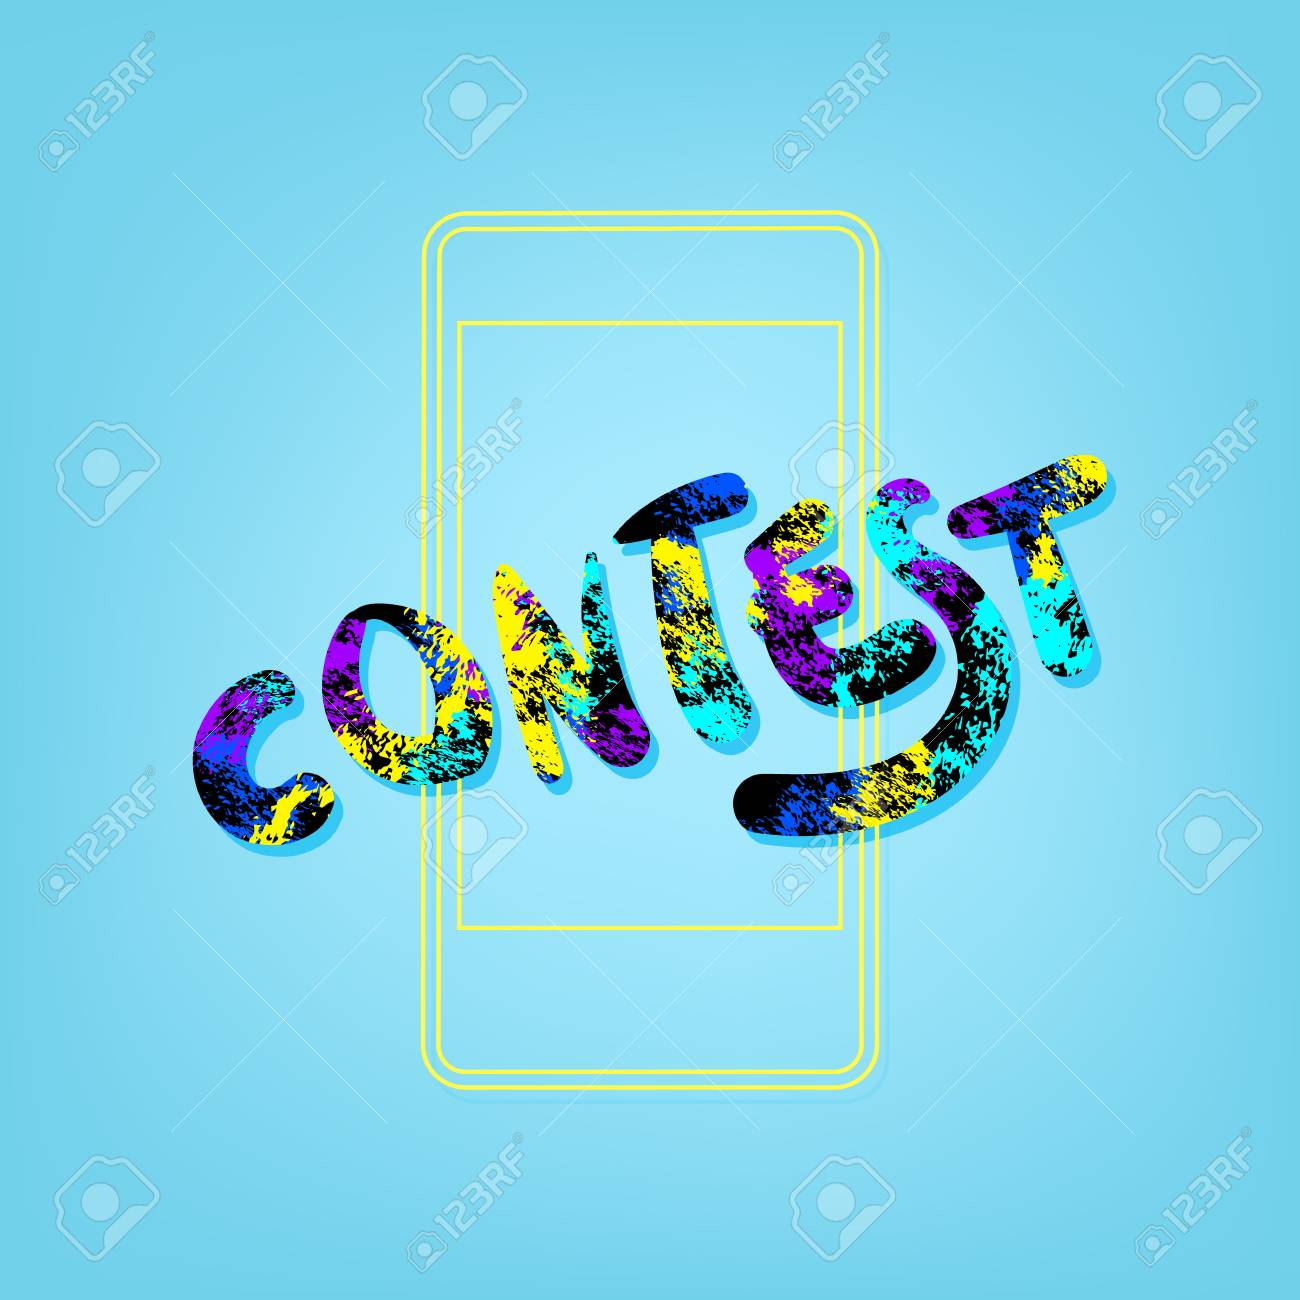 Contest phrase with phone background  Element for graphic design